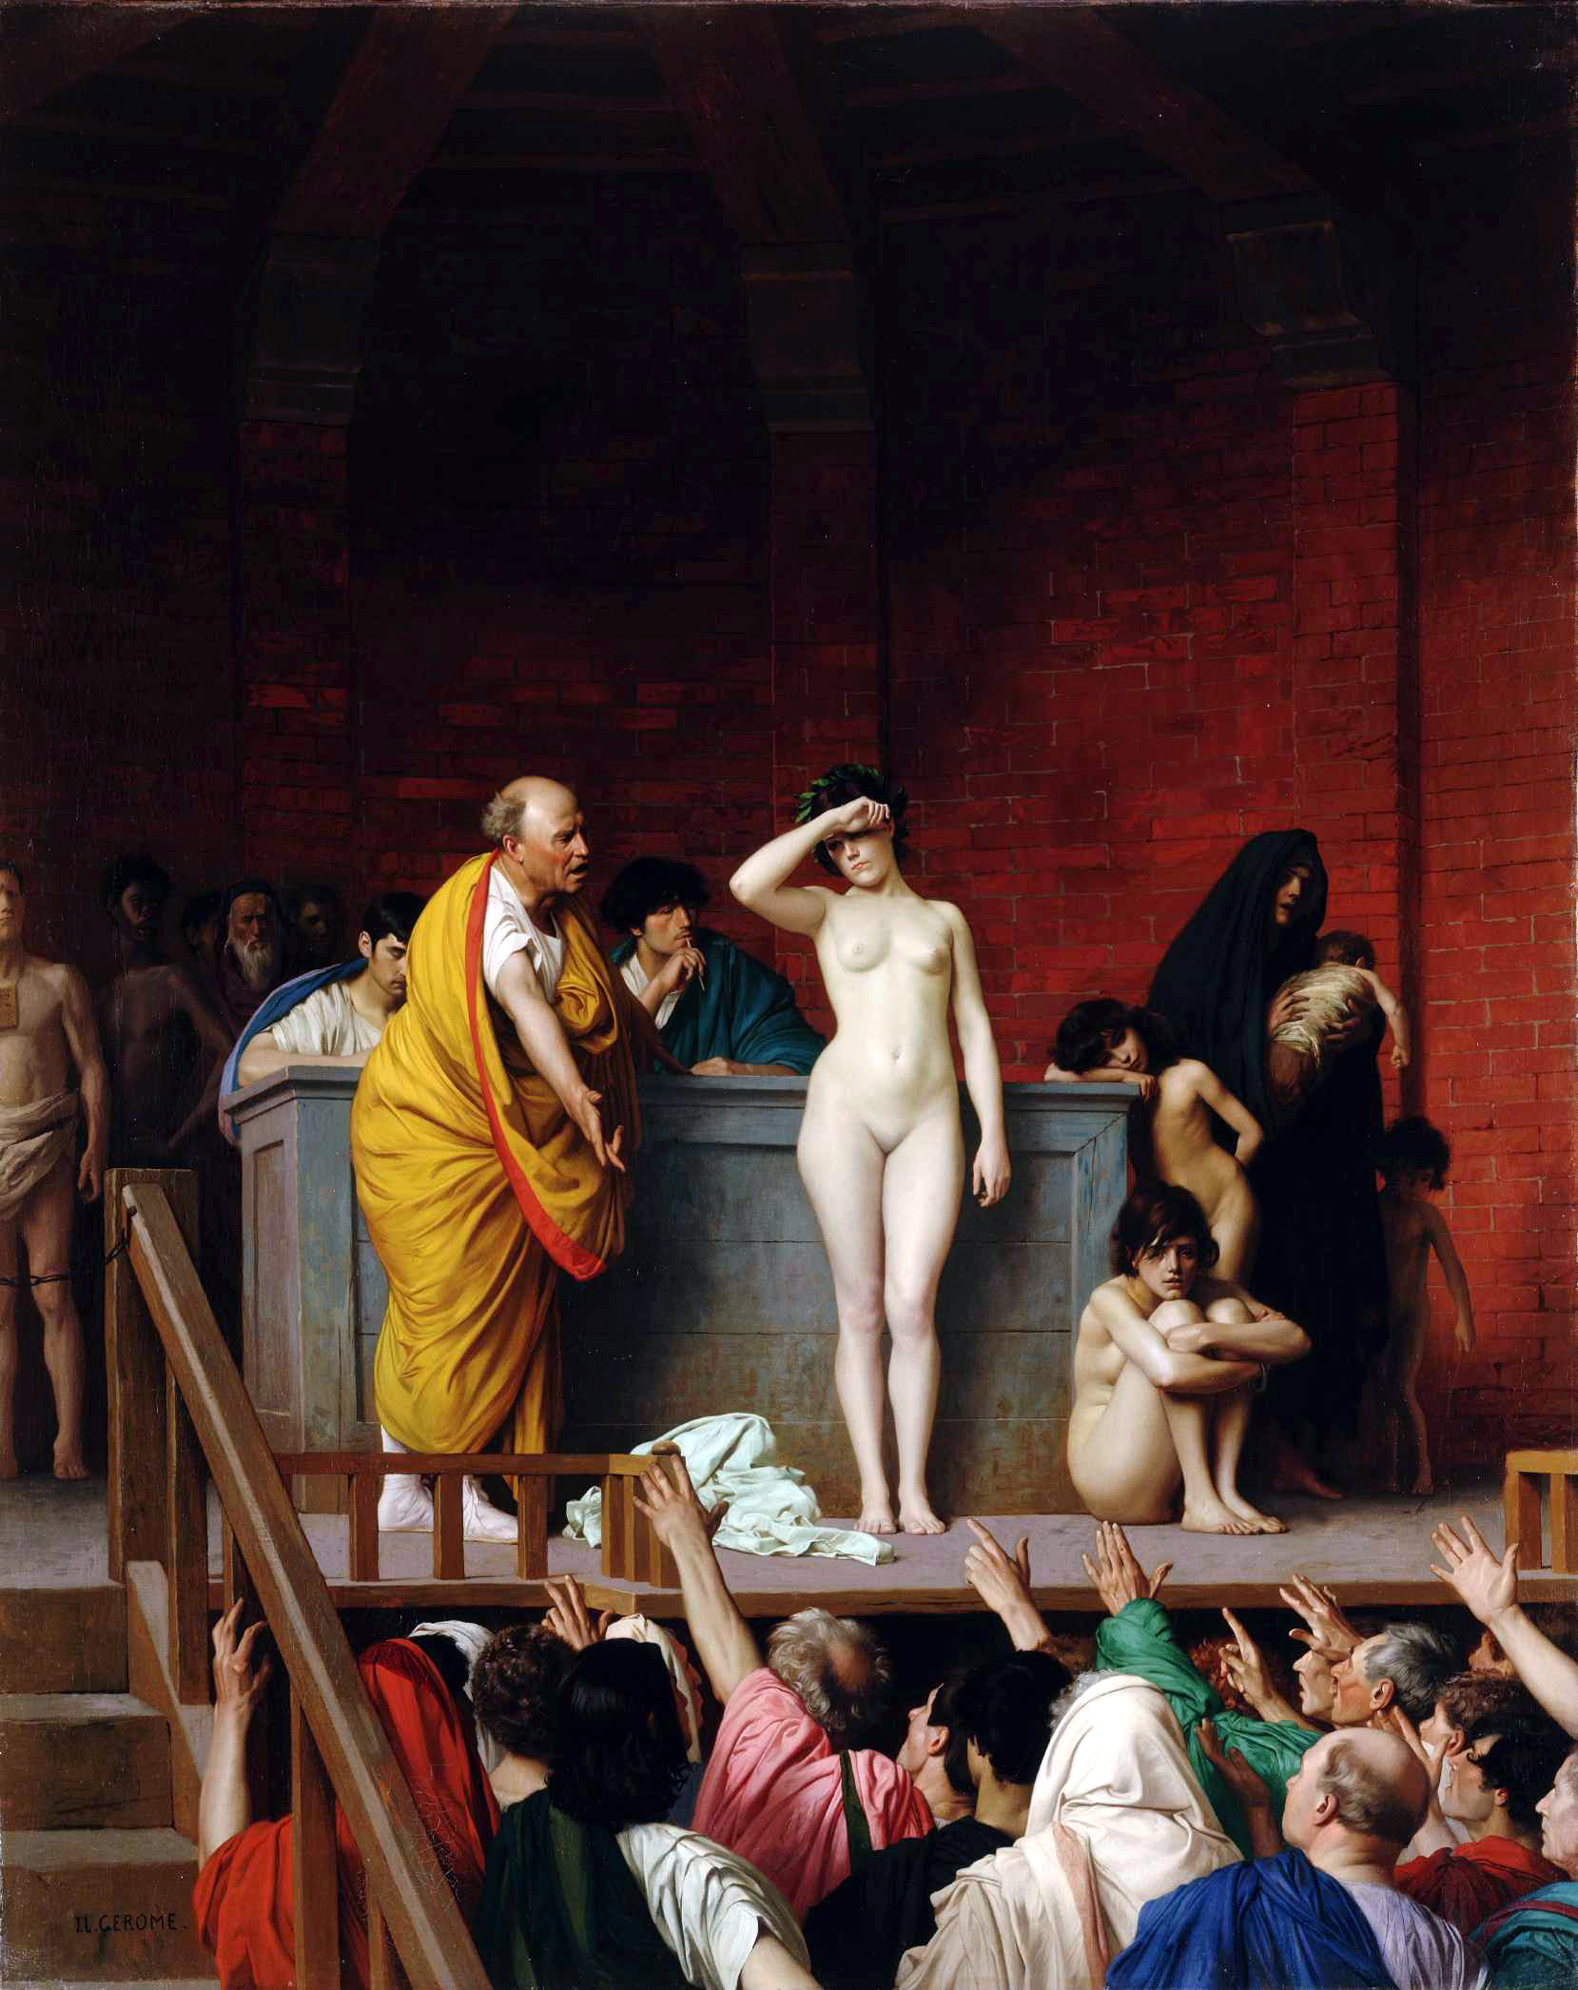 Harem Slave Auction http://allart.biz/photos/image/jean_leon_gerome_109_slave_auction.html